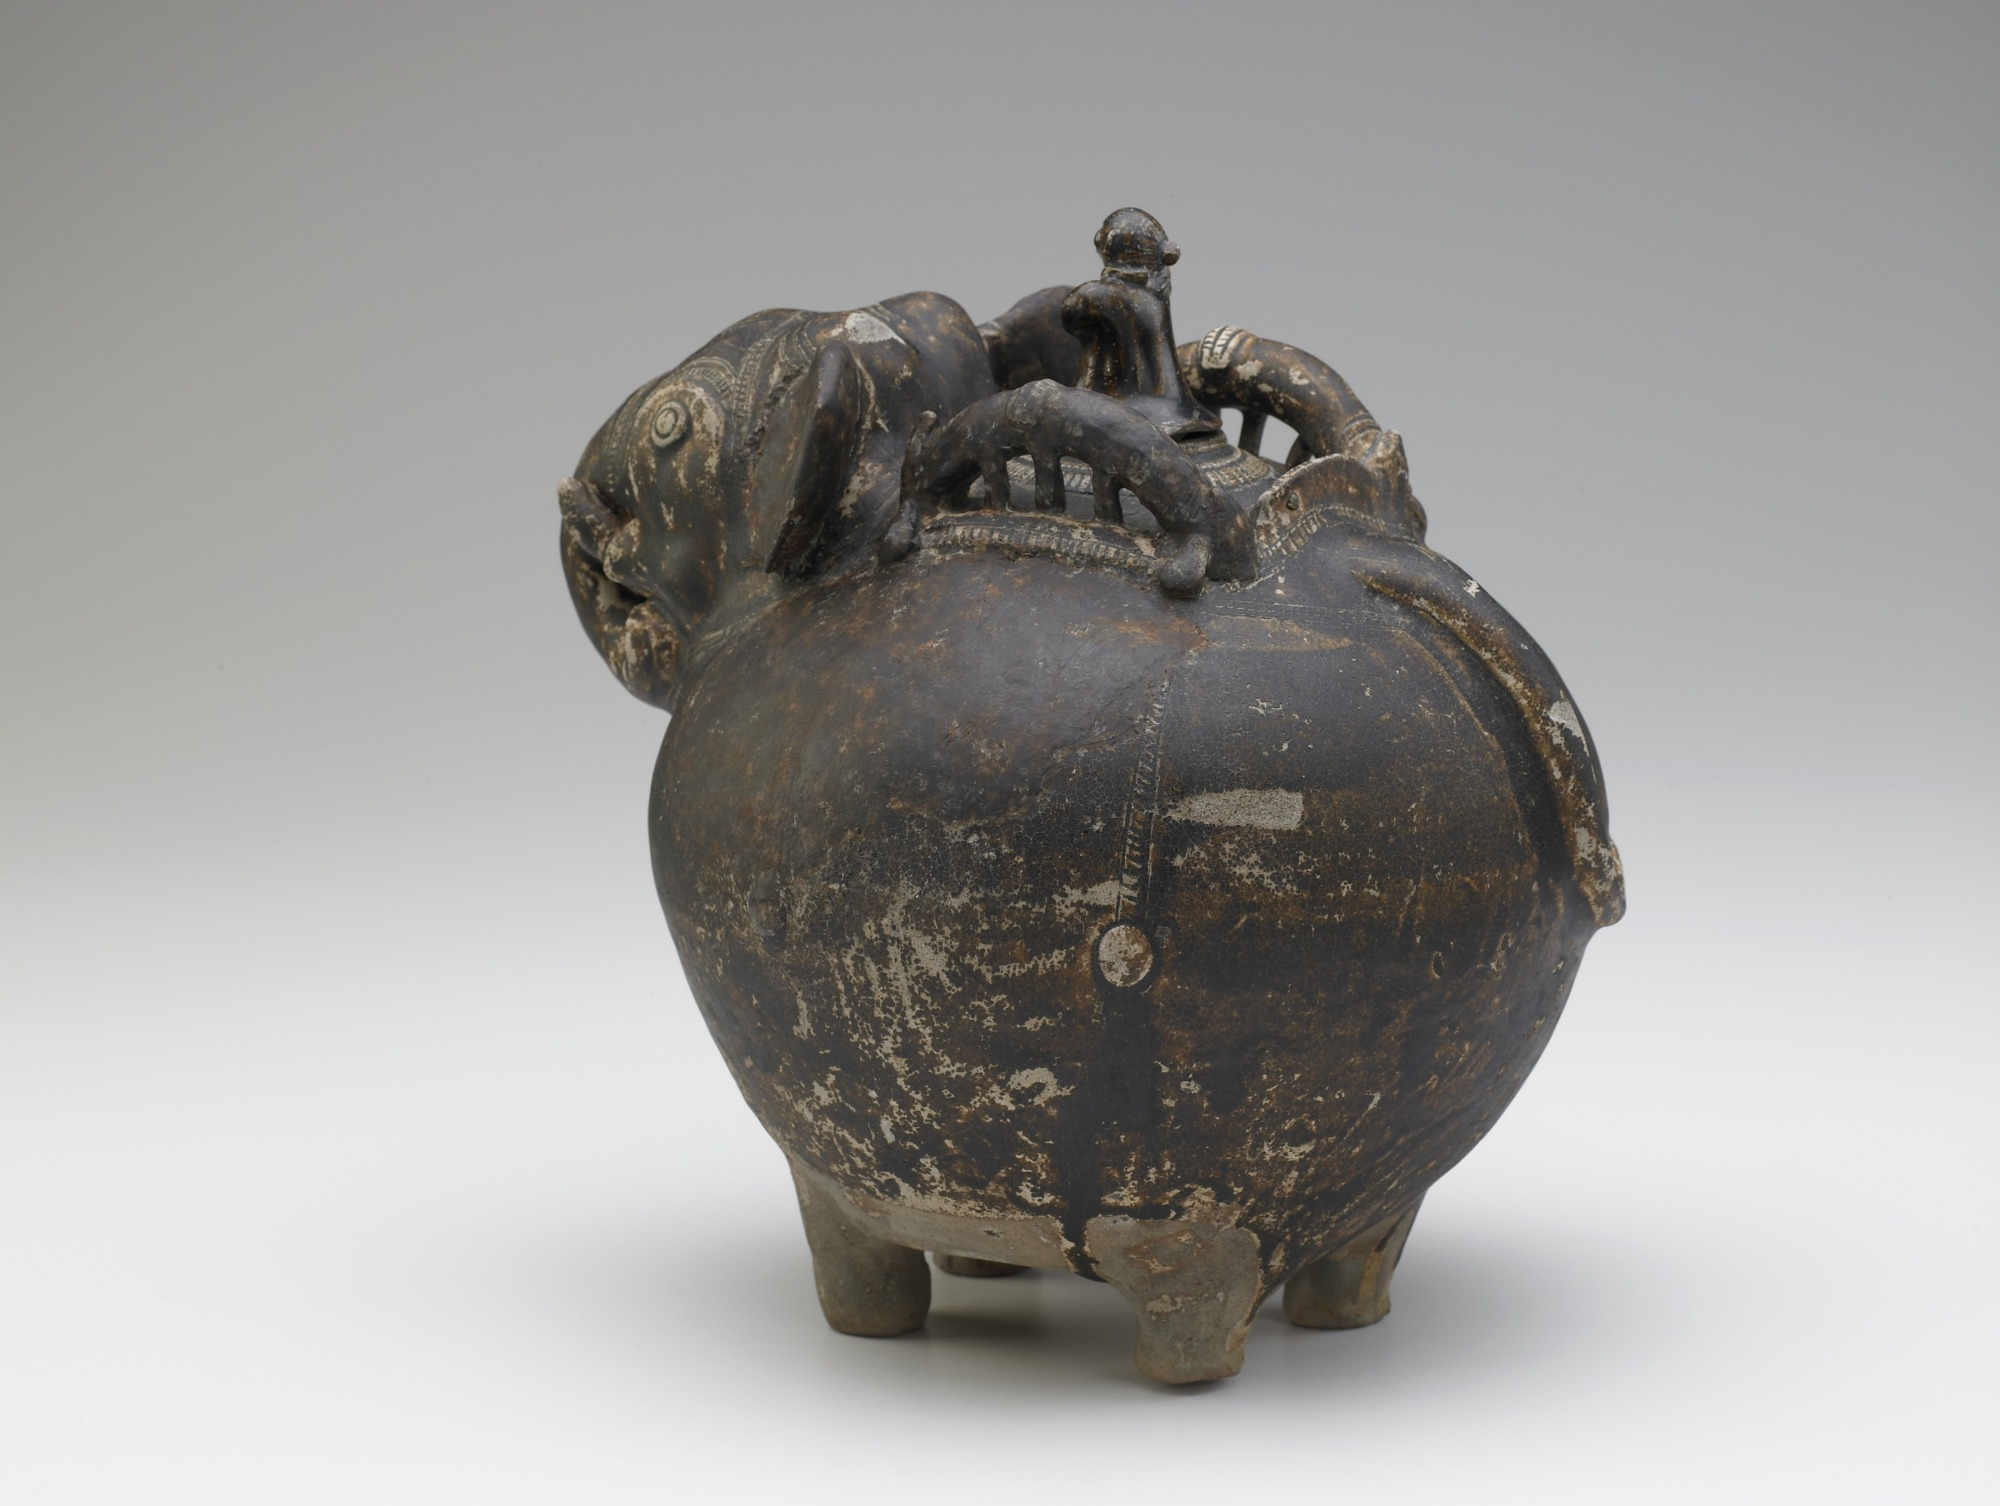 vessel with lid: Pouring vessel in the form of a caparisoned elephant, with a spout on the shoulder